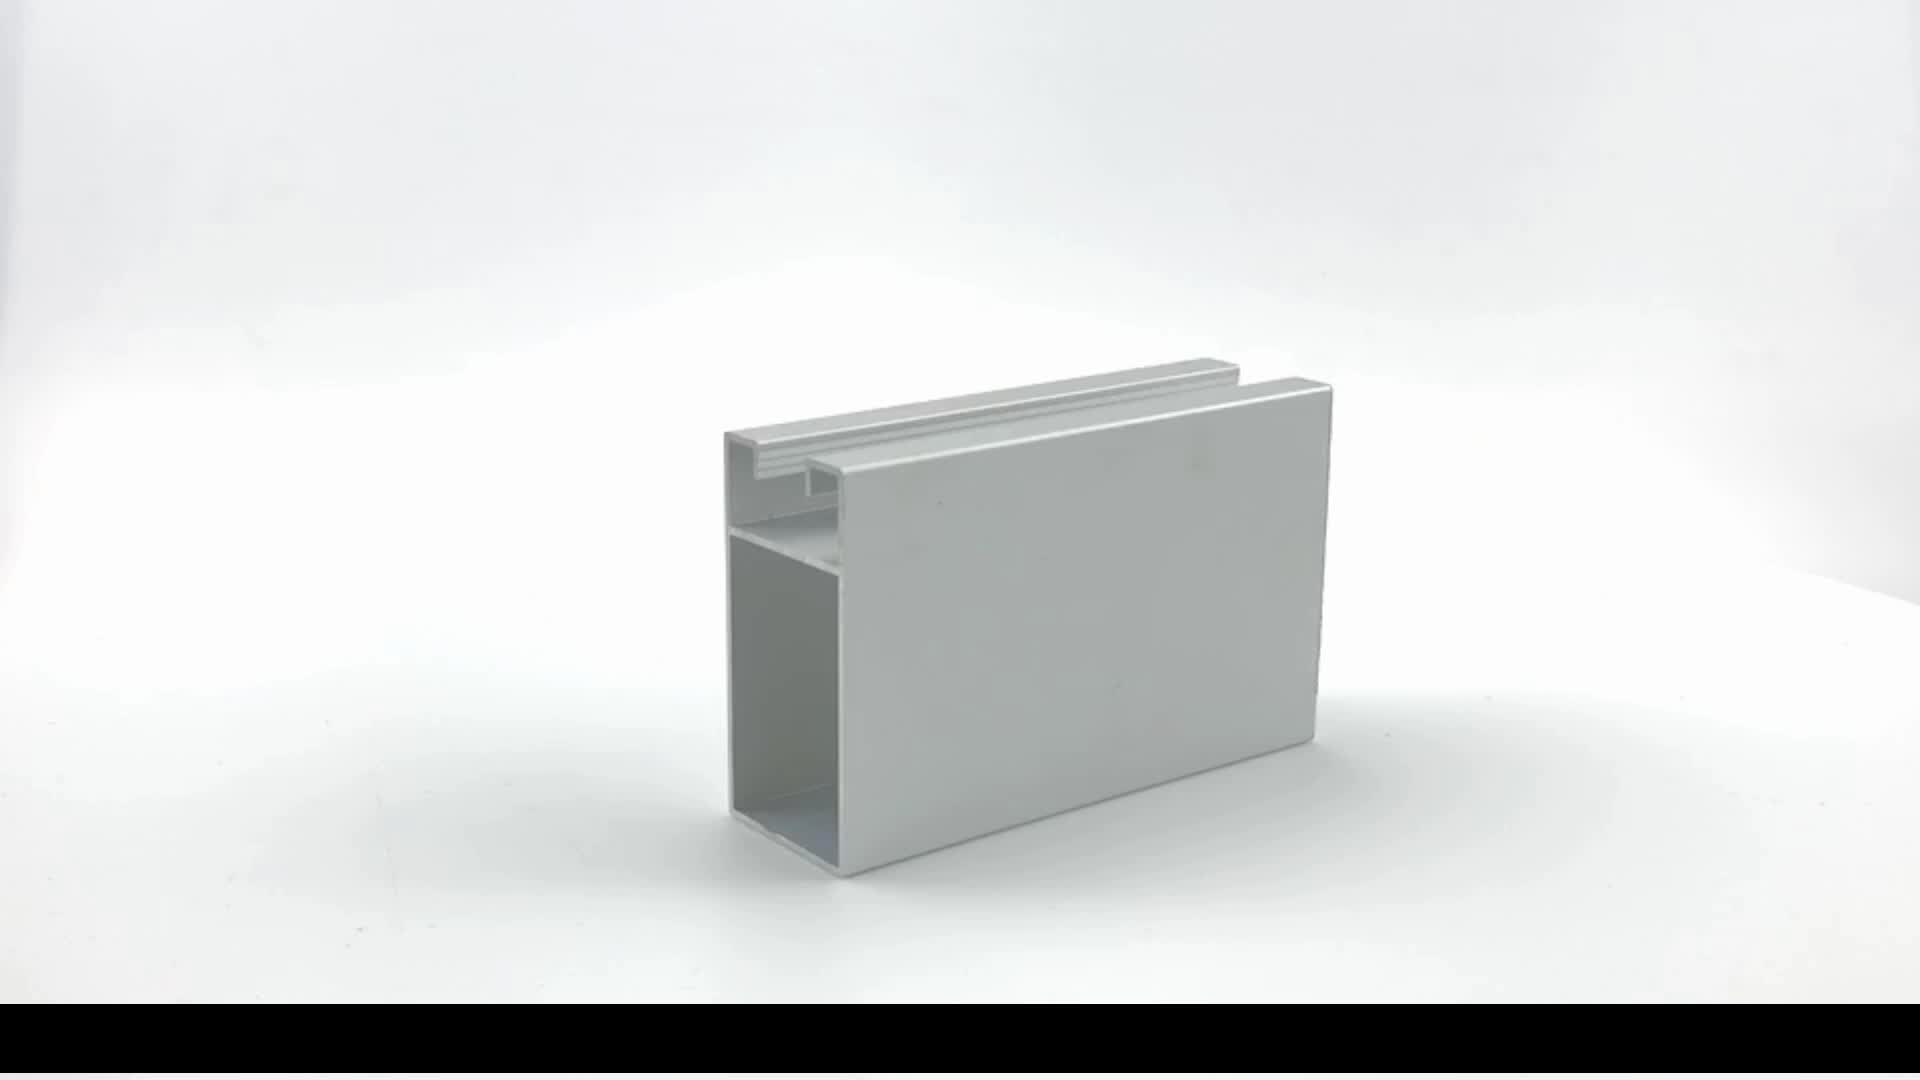 OEM Manufacturer International Anodized Extruded Aluminum Section Profile  for Sliding Door and Windows